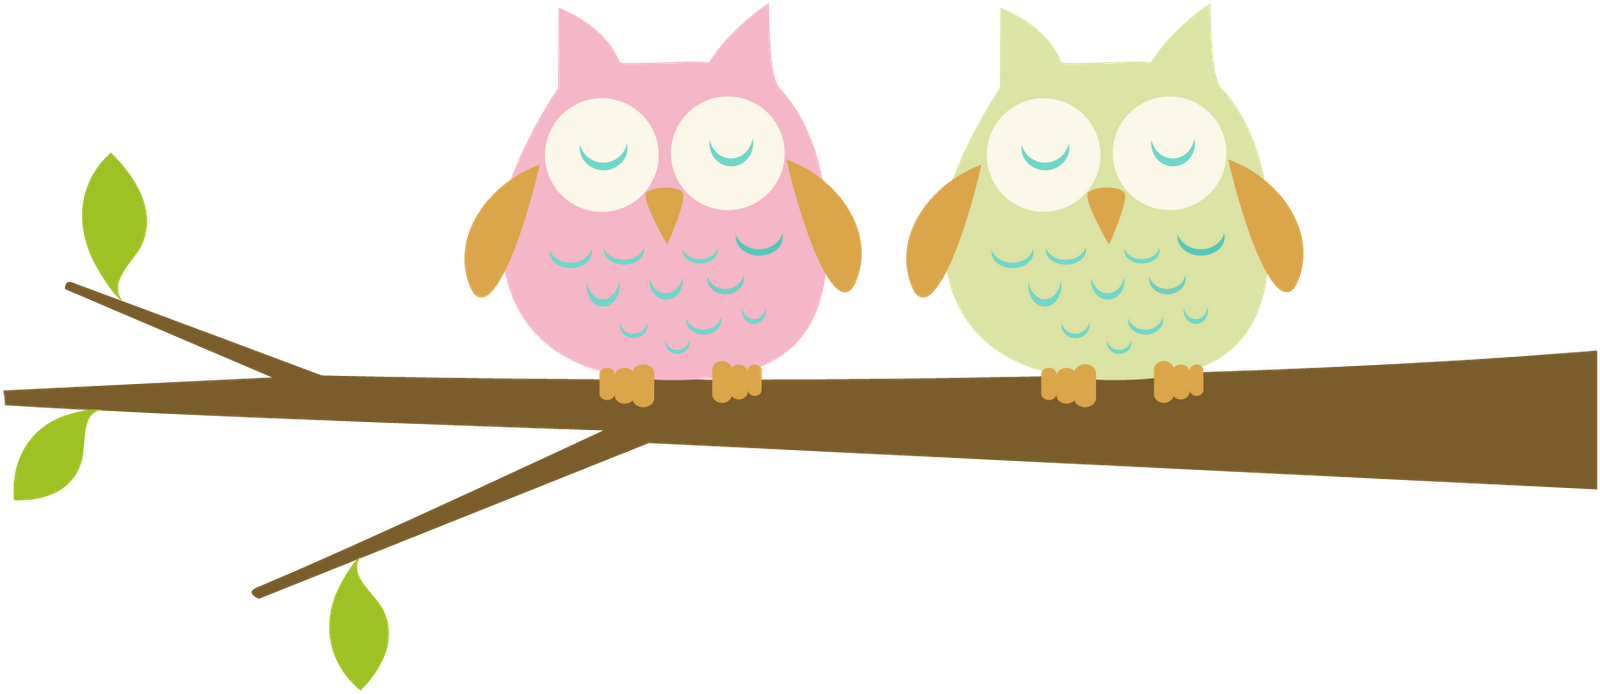 Baby owl clipart free clip art freeuse library Owl Clip Art | 16 baby owl clip art free cliparts that you can ... clip art freeuse library